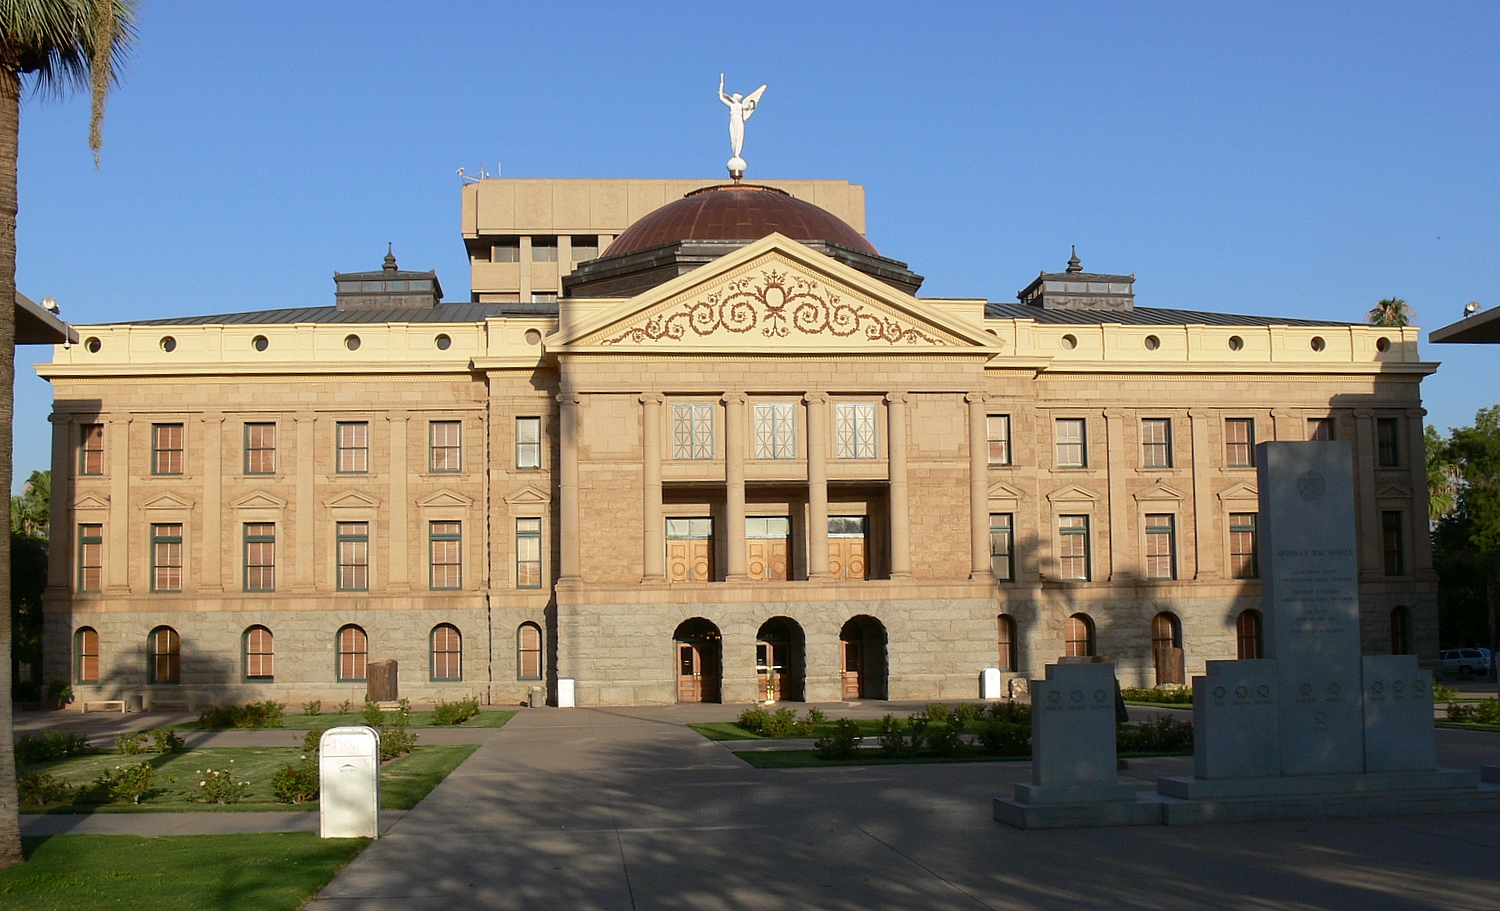 State Capitol building in Arizona